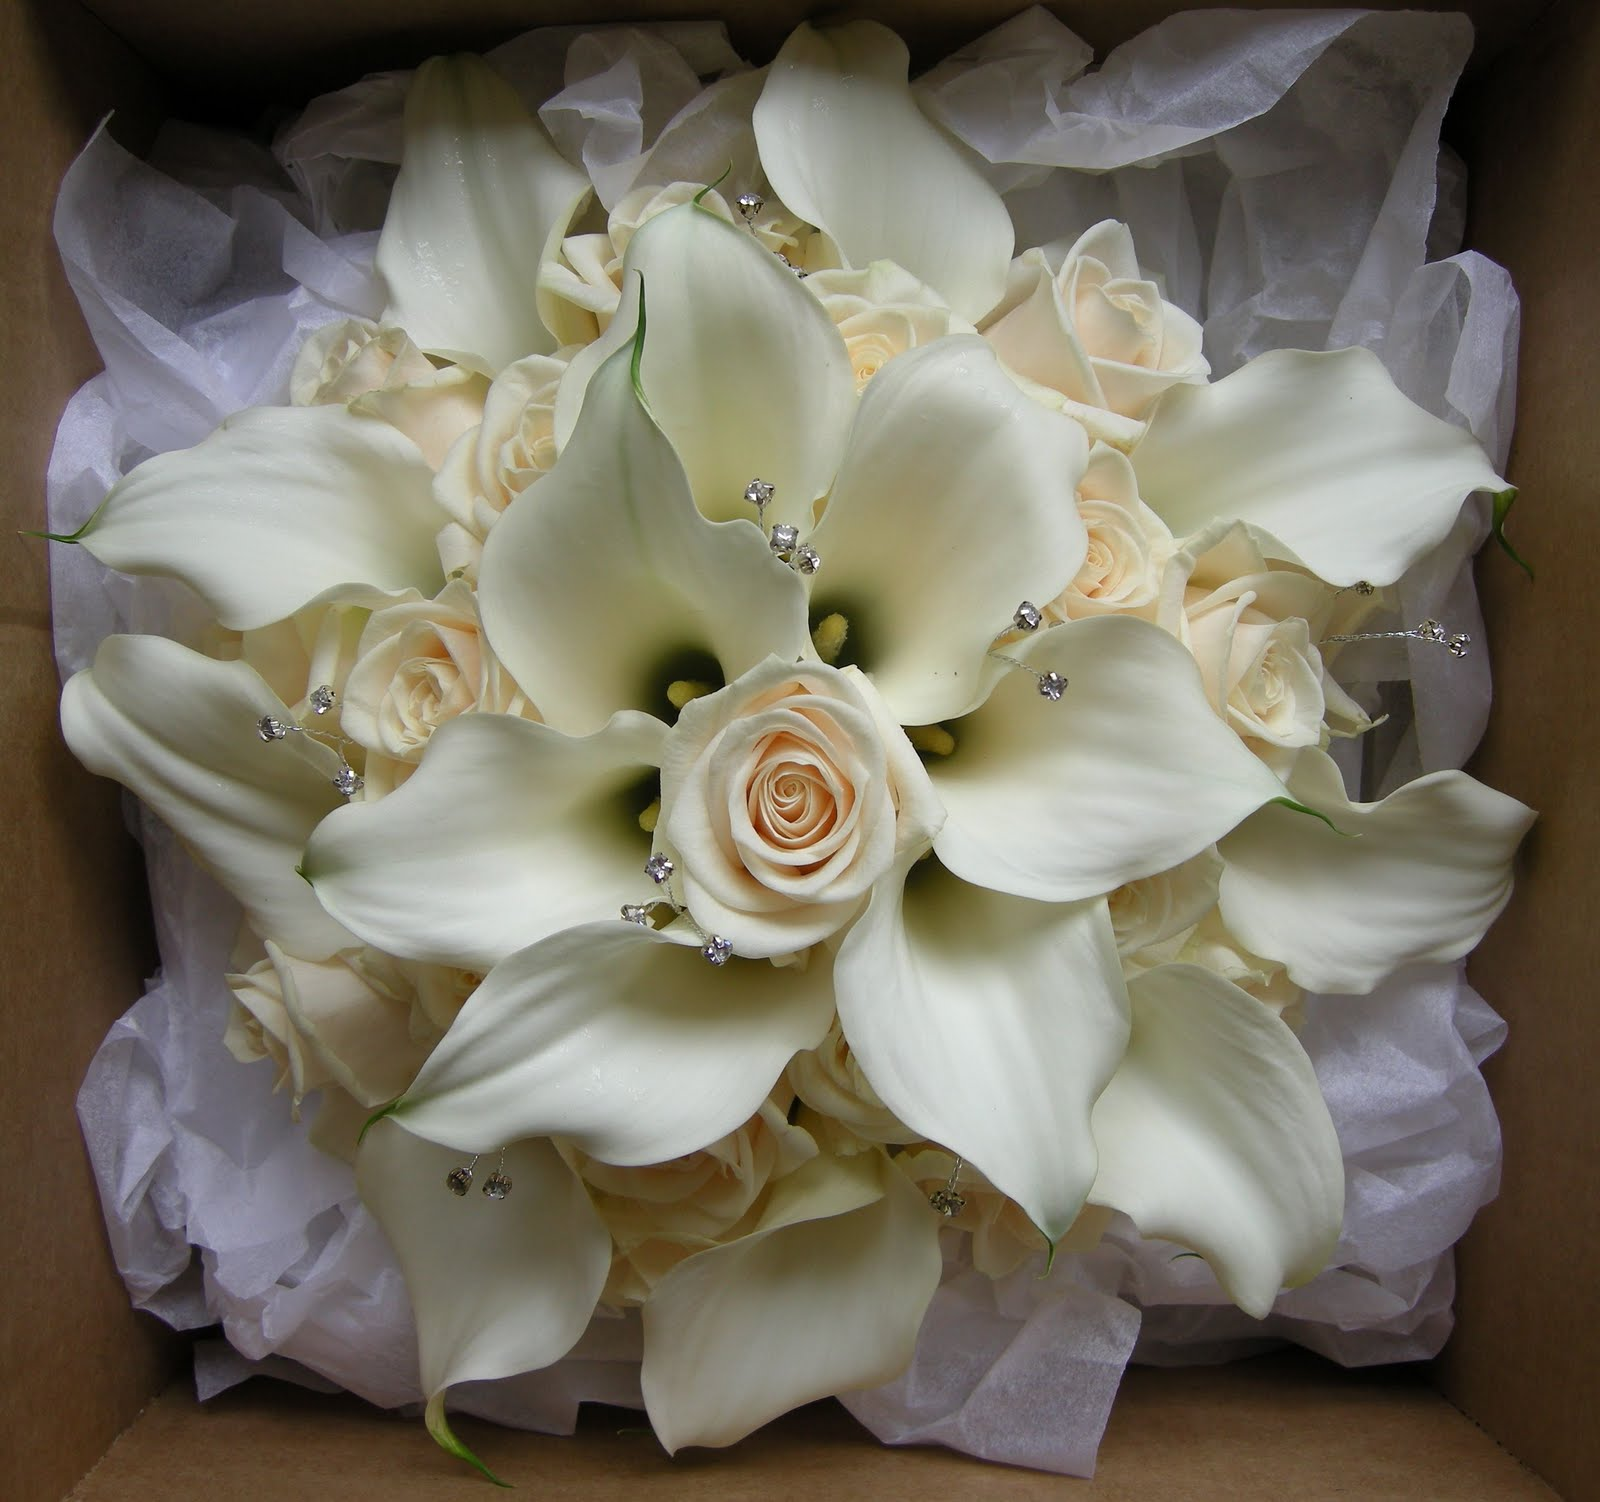 Lily Flower Wedding Bouquet: Wedding Flowers Blog: Kelly's Wedding Flowers,Princess